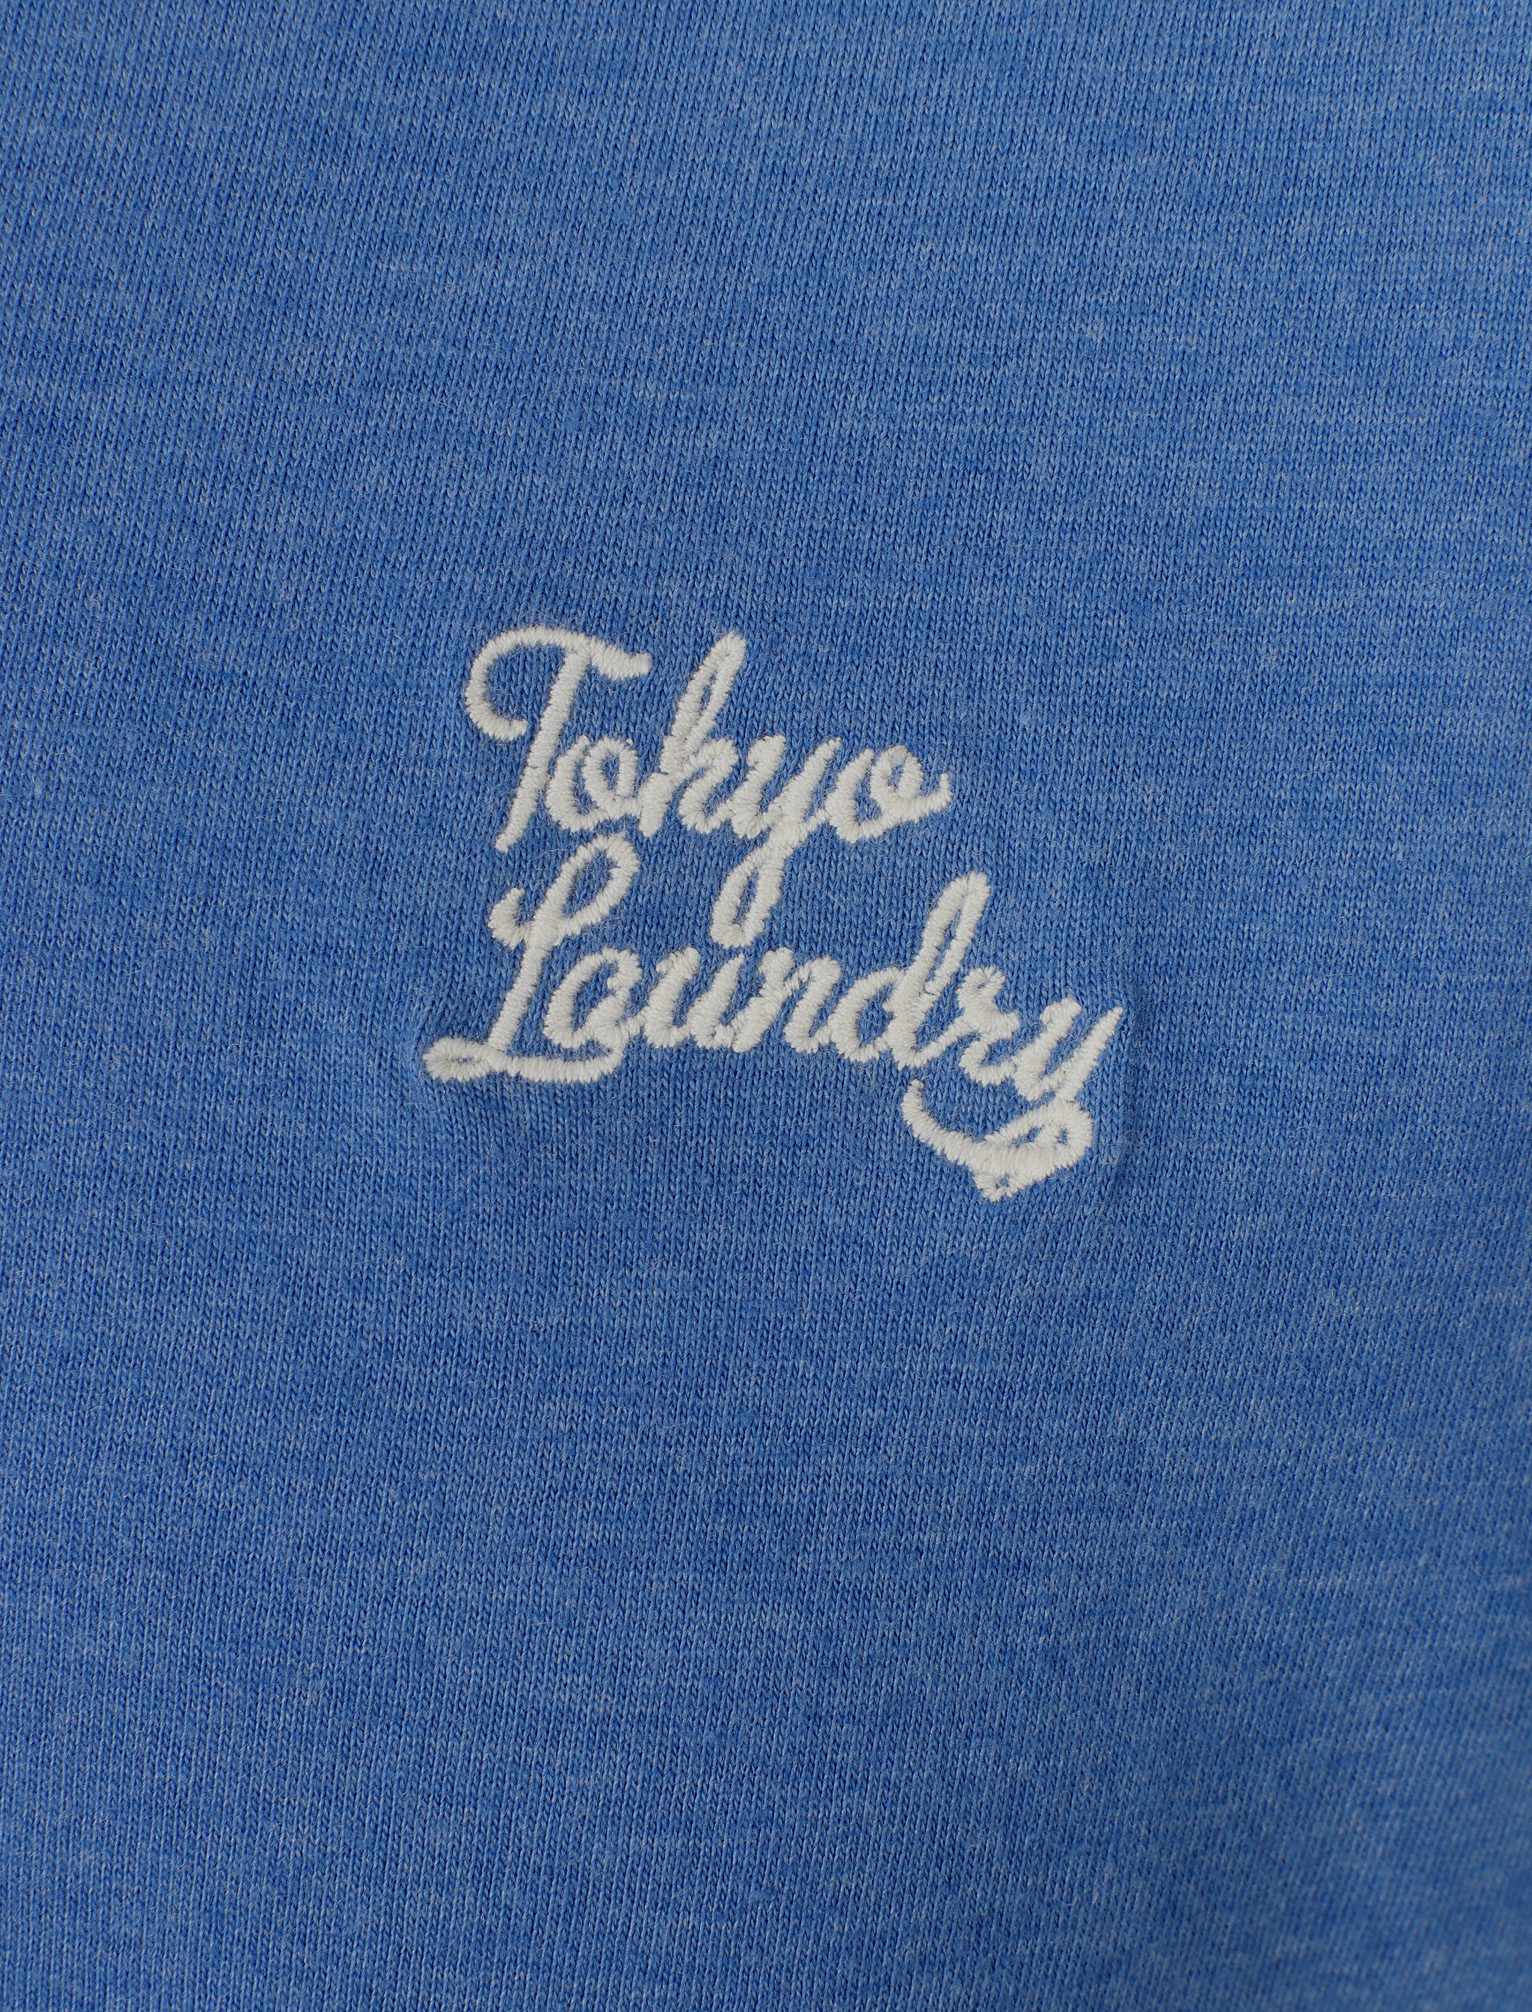 New-Mens-Tokyo-Laundry-Montecarlo-Crew-Neck-Cotton-Rich-Soft-T-Shirt-Size-S-XXL thumbnail 13